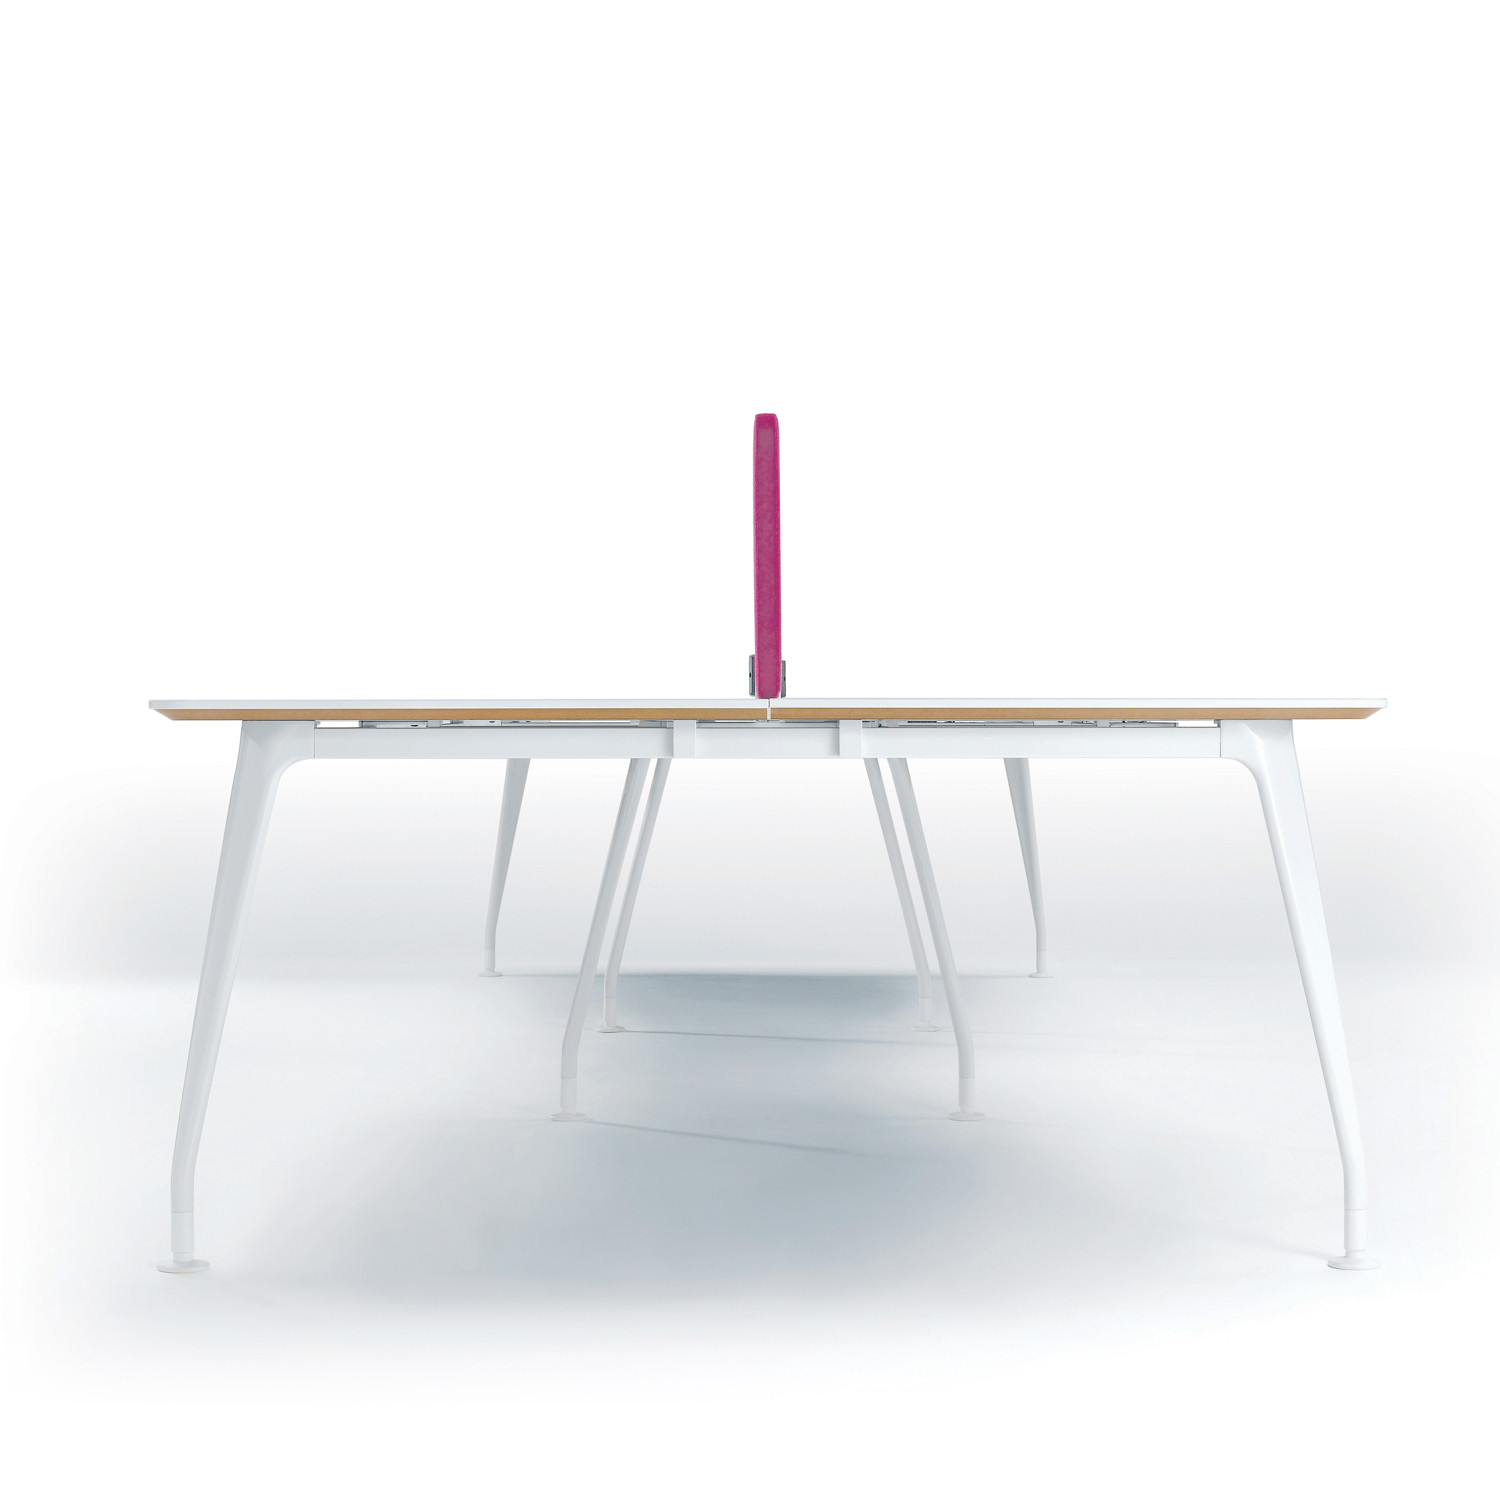 DNA Bench Desk by Verco